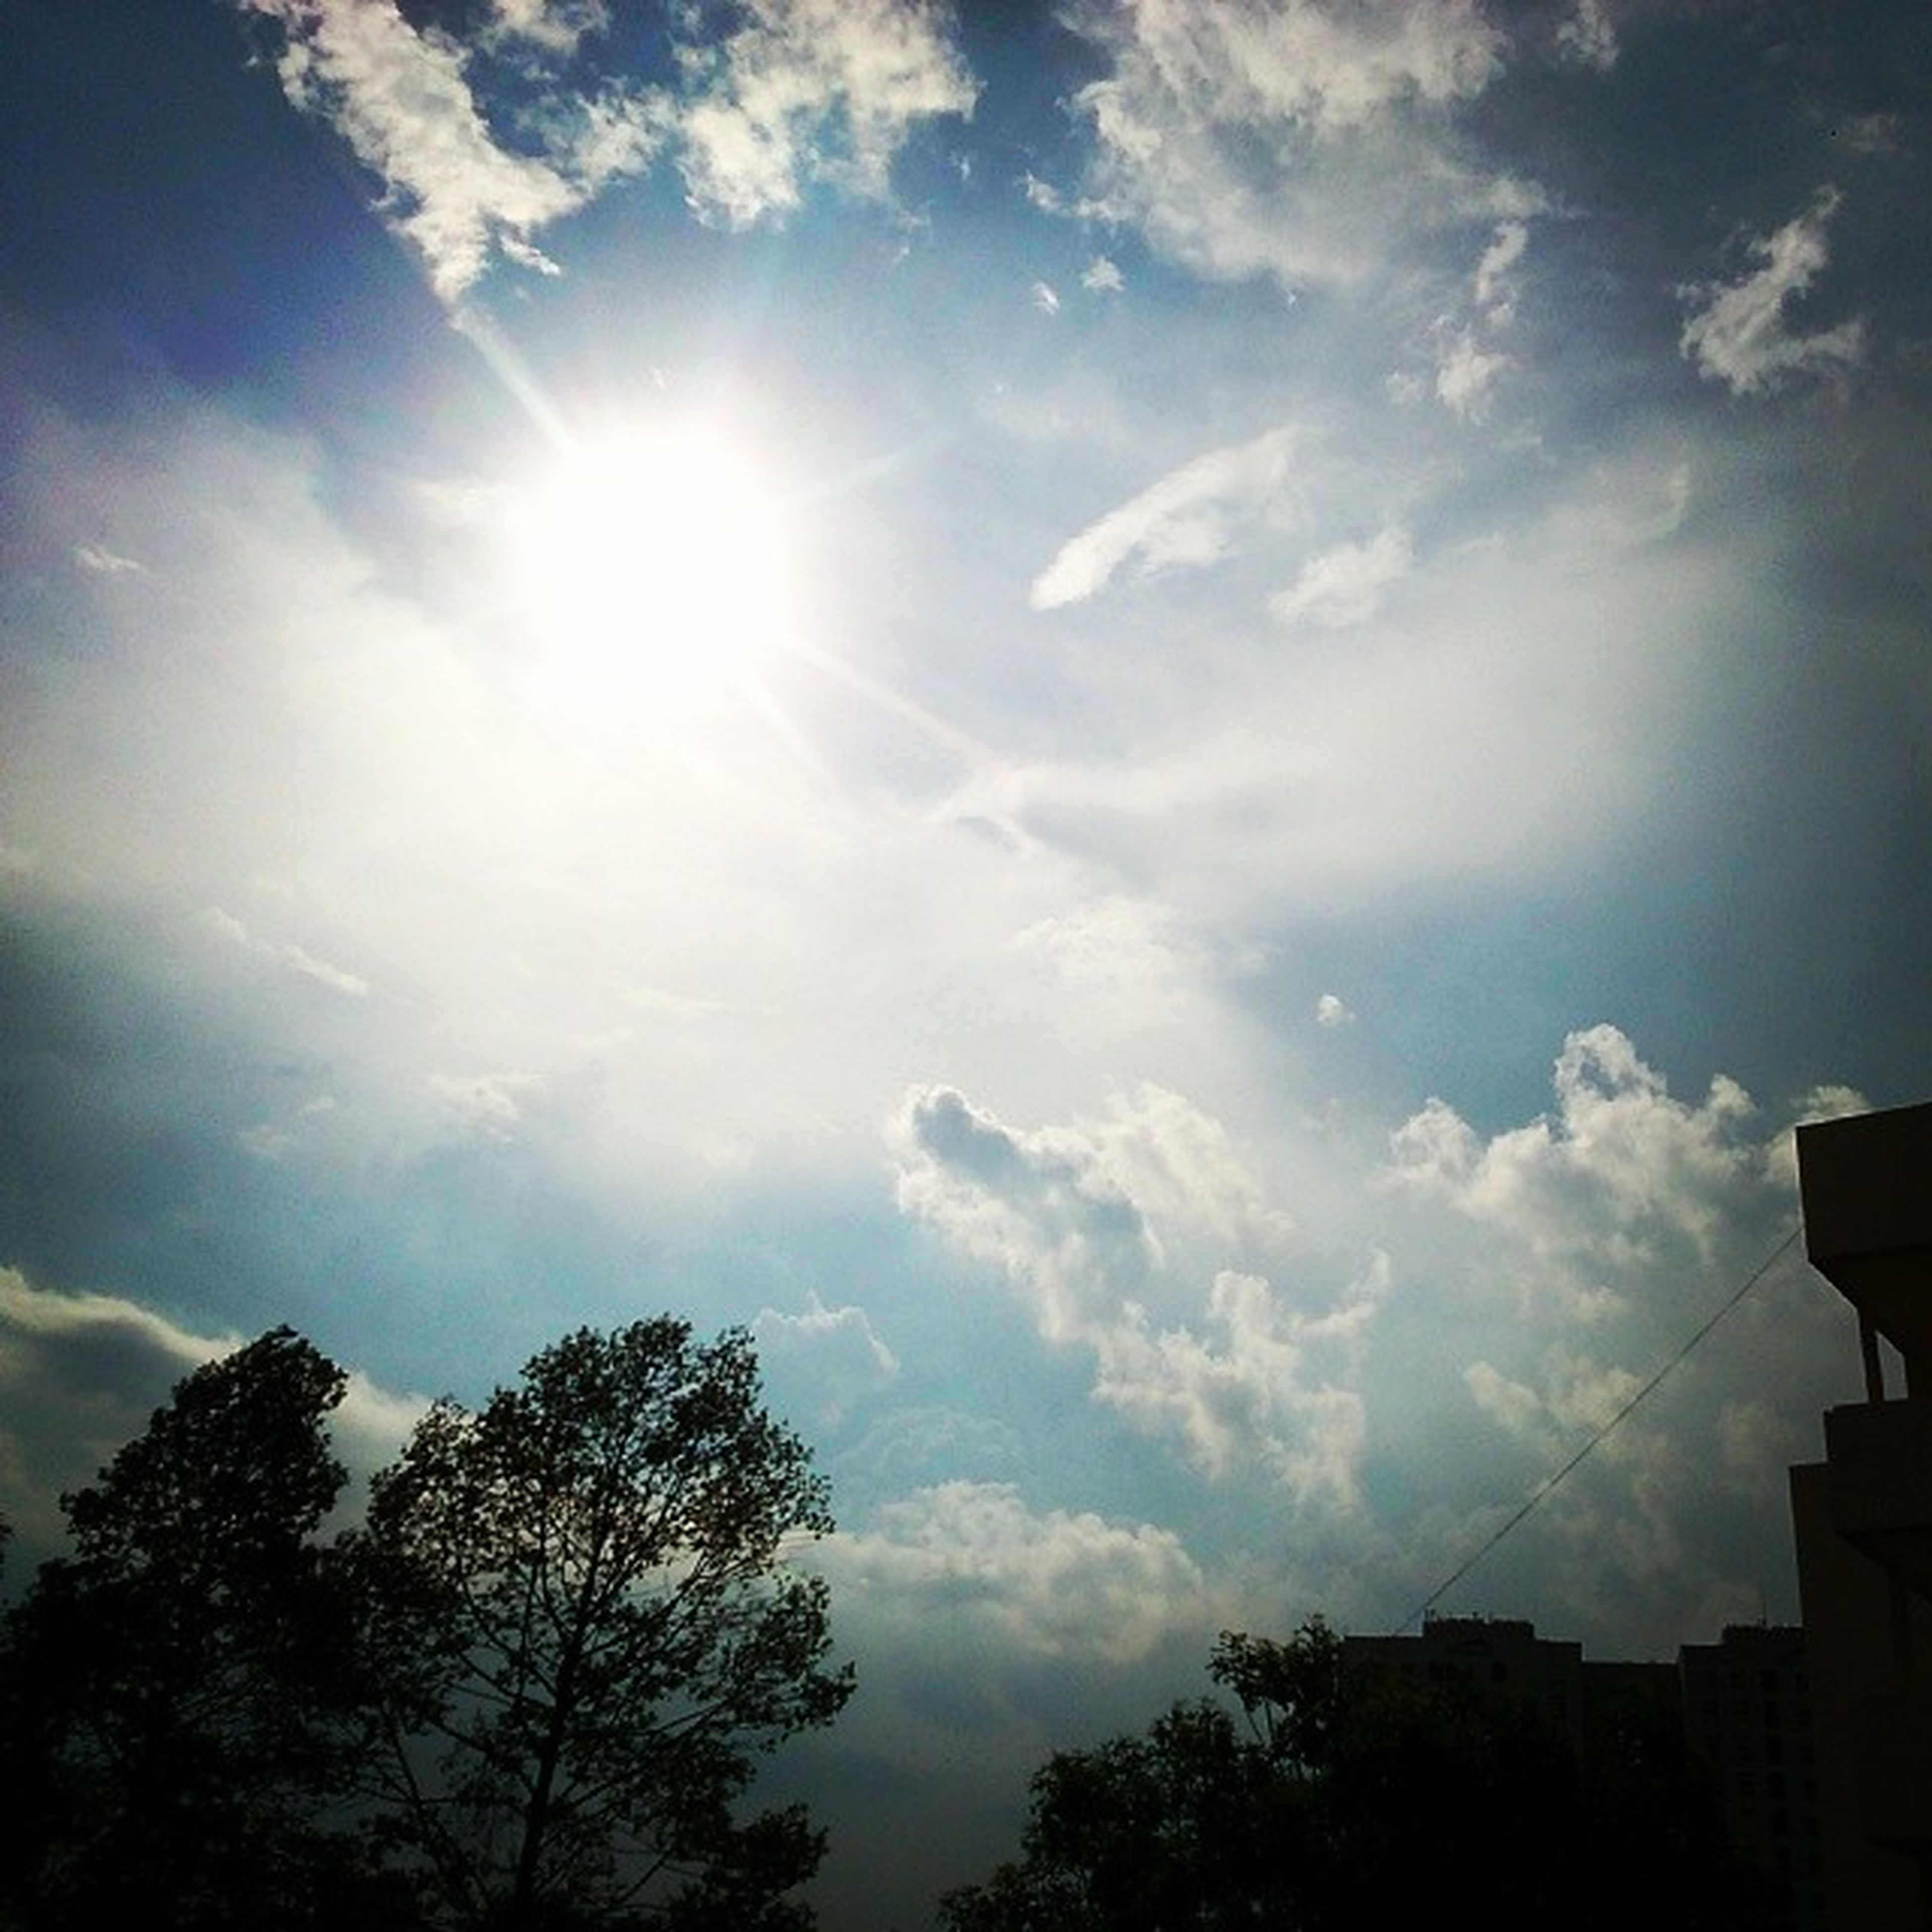 sun, sunbeam, sky, cloud - sky, tree, sunlight, low angle view, beauty in nature, lens flare, nature, tranquility, silhouette, cloud, scenics, tranquil scene, cloudy, bright, sunny, day, no people